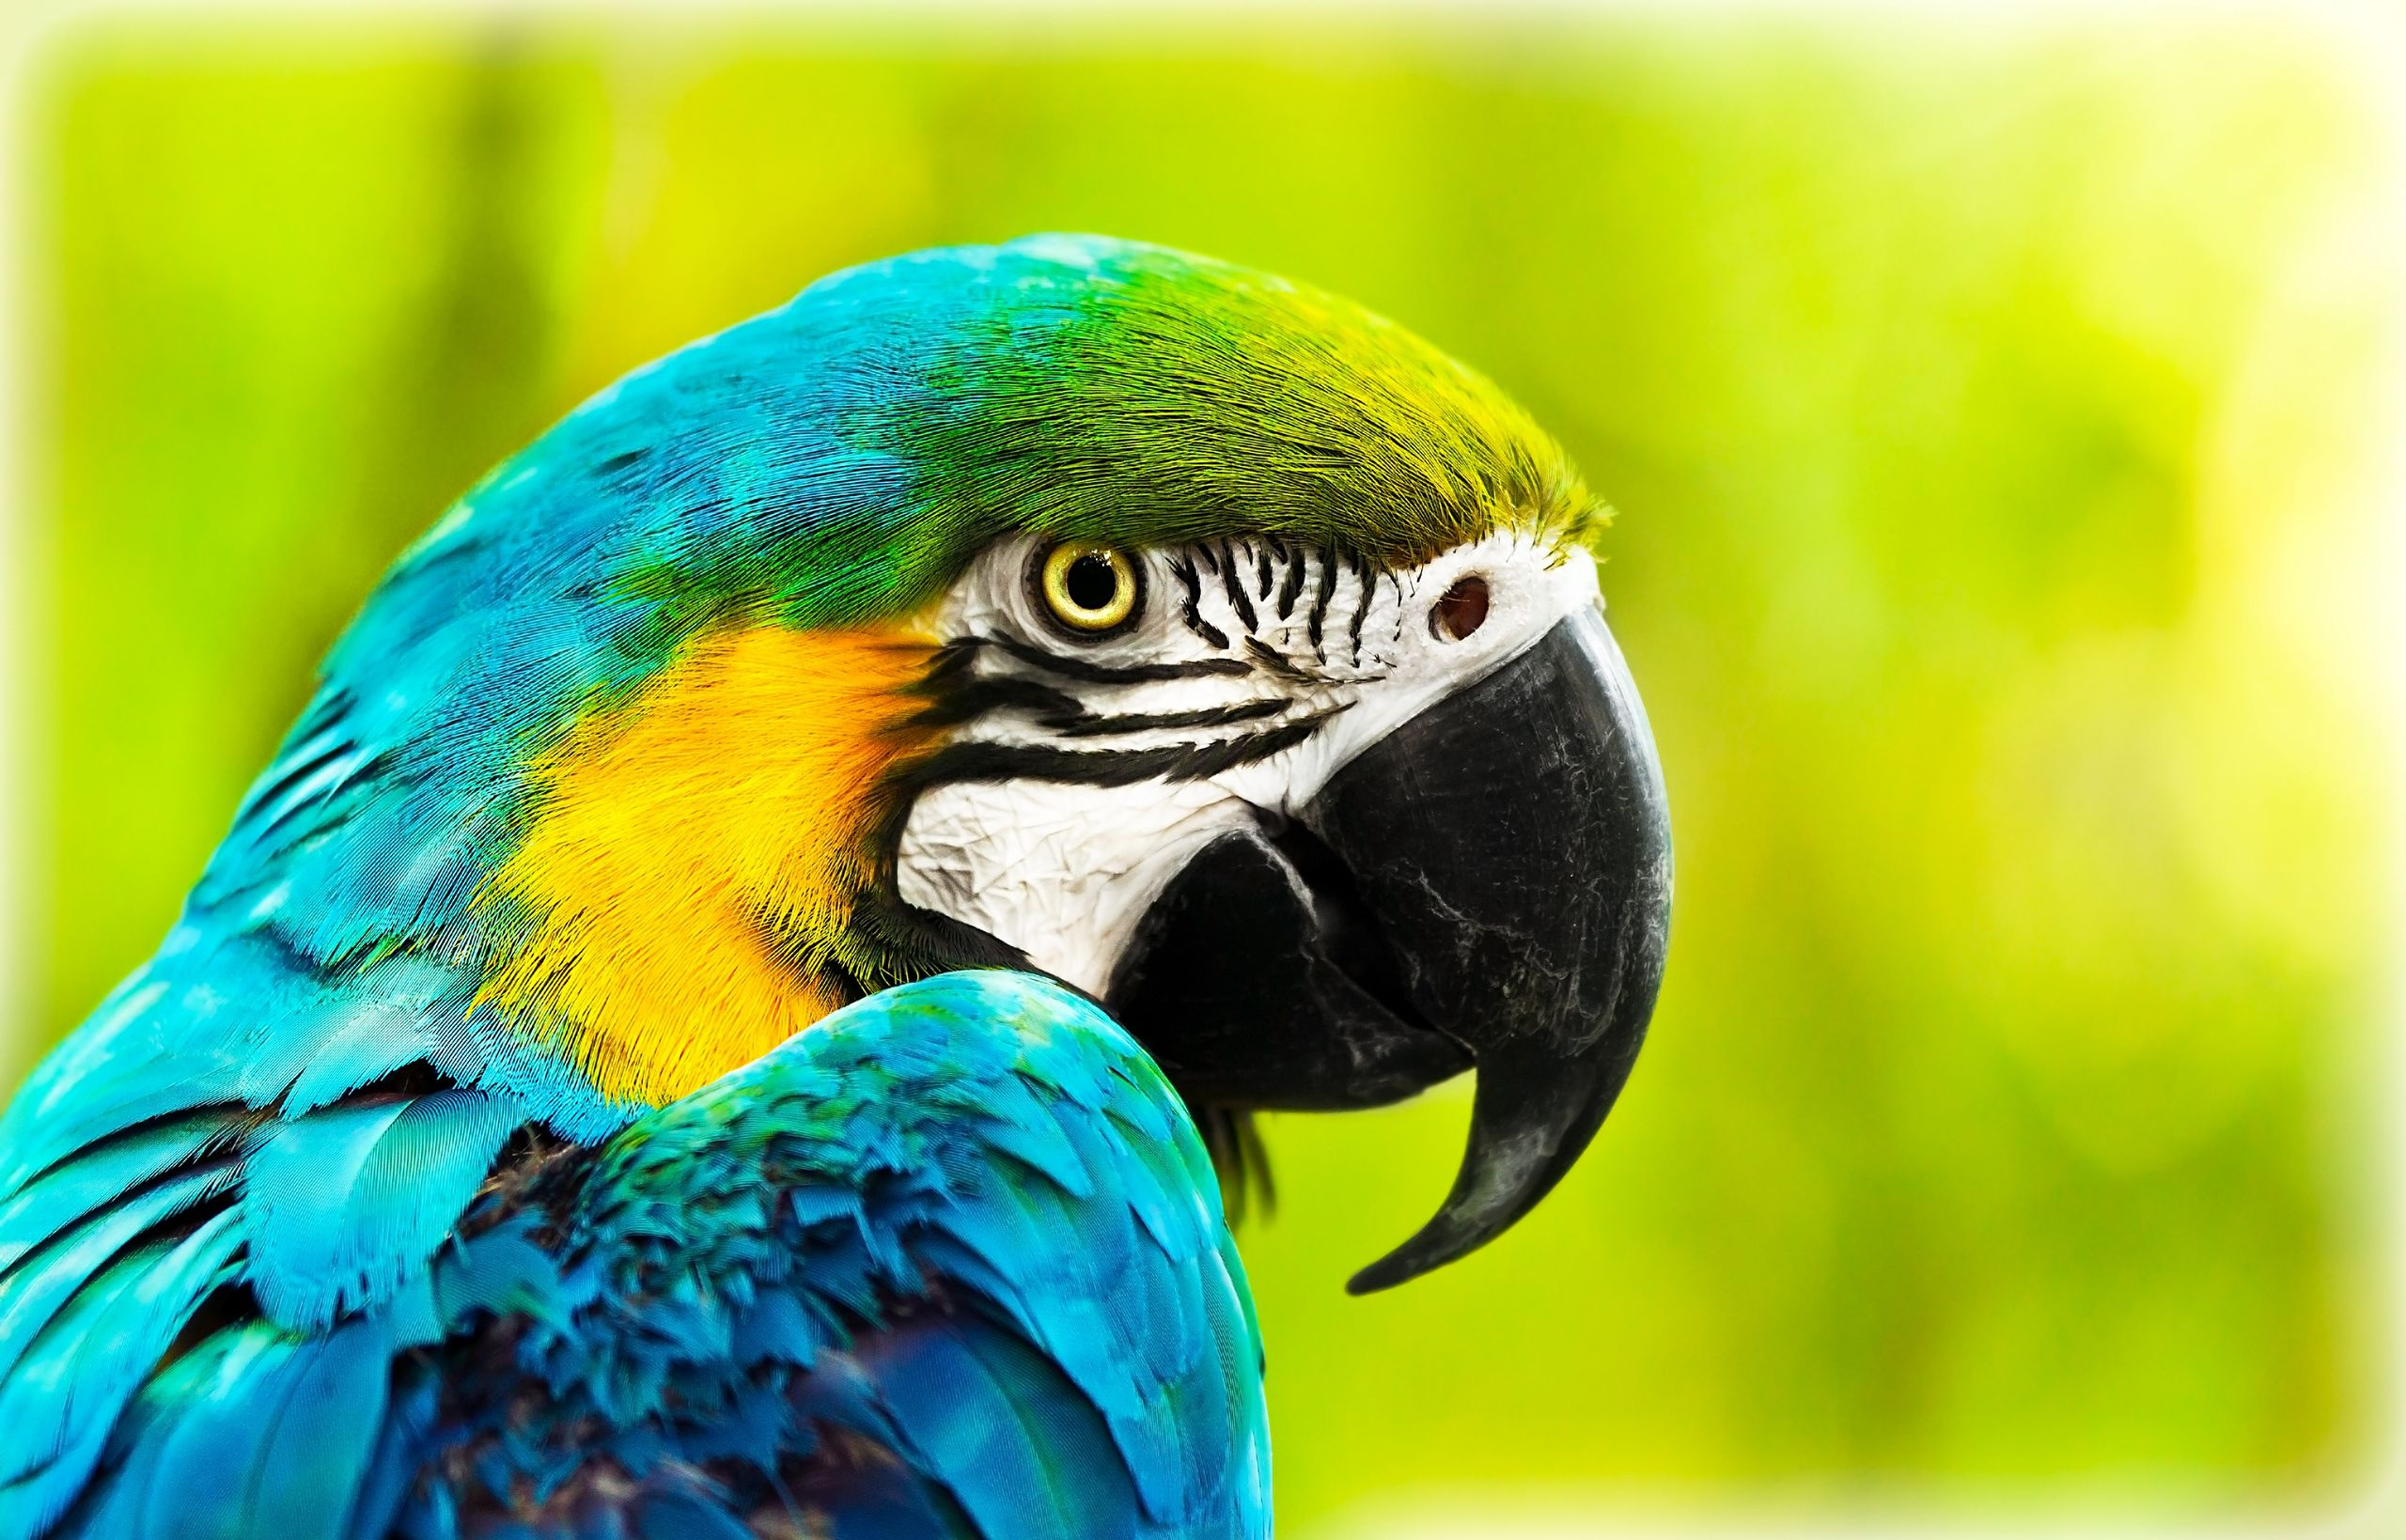 12981140 - exotic colorful african macaw parrot, beautiful close up on bird face over natural green background, bird watching safari, south africa wildlife